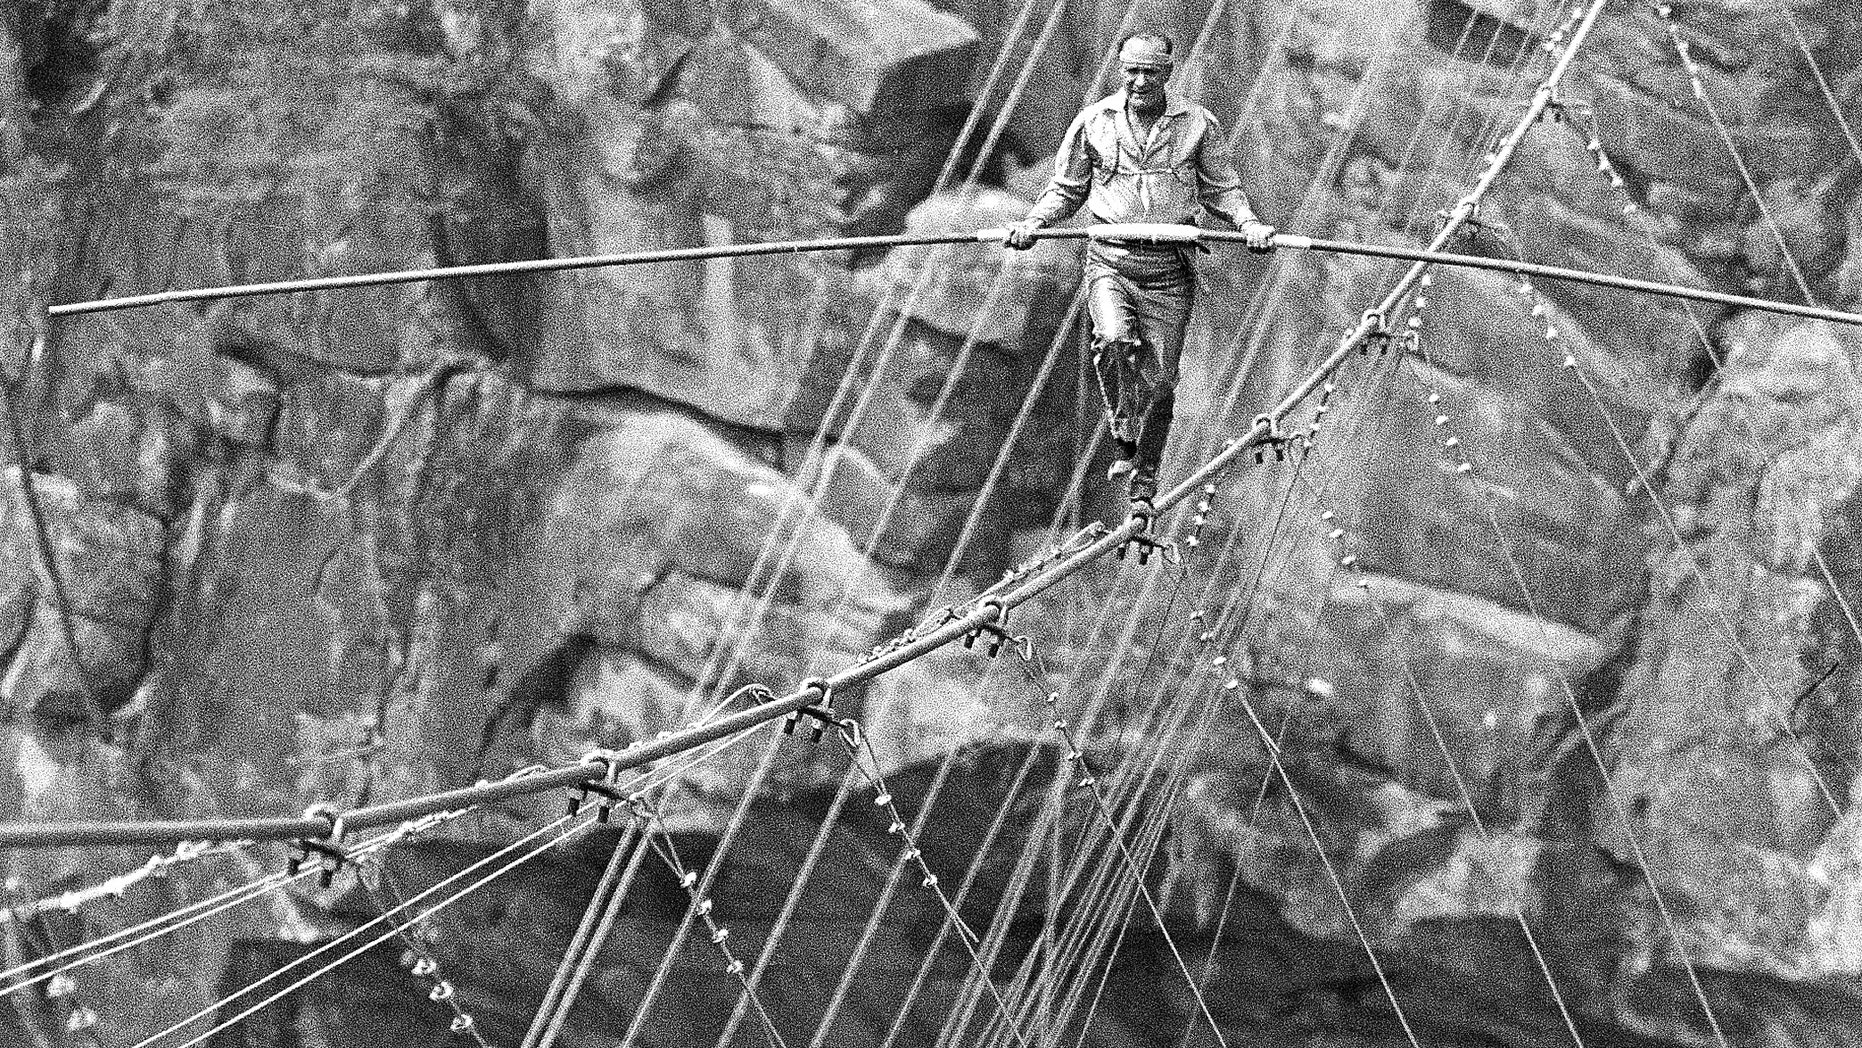 FILE -I n this July 18, 1970 file photo, Karl Wallenda walks across the cable at the nearly 1,000-foot deep Tallulah Gorge, Ga. His great-grandson Nik Wallenda hopes to accomplish the same feat in the near future. (AP Photo/Bob Schutz)